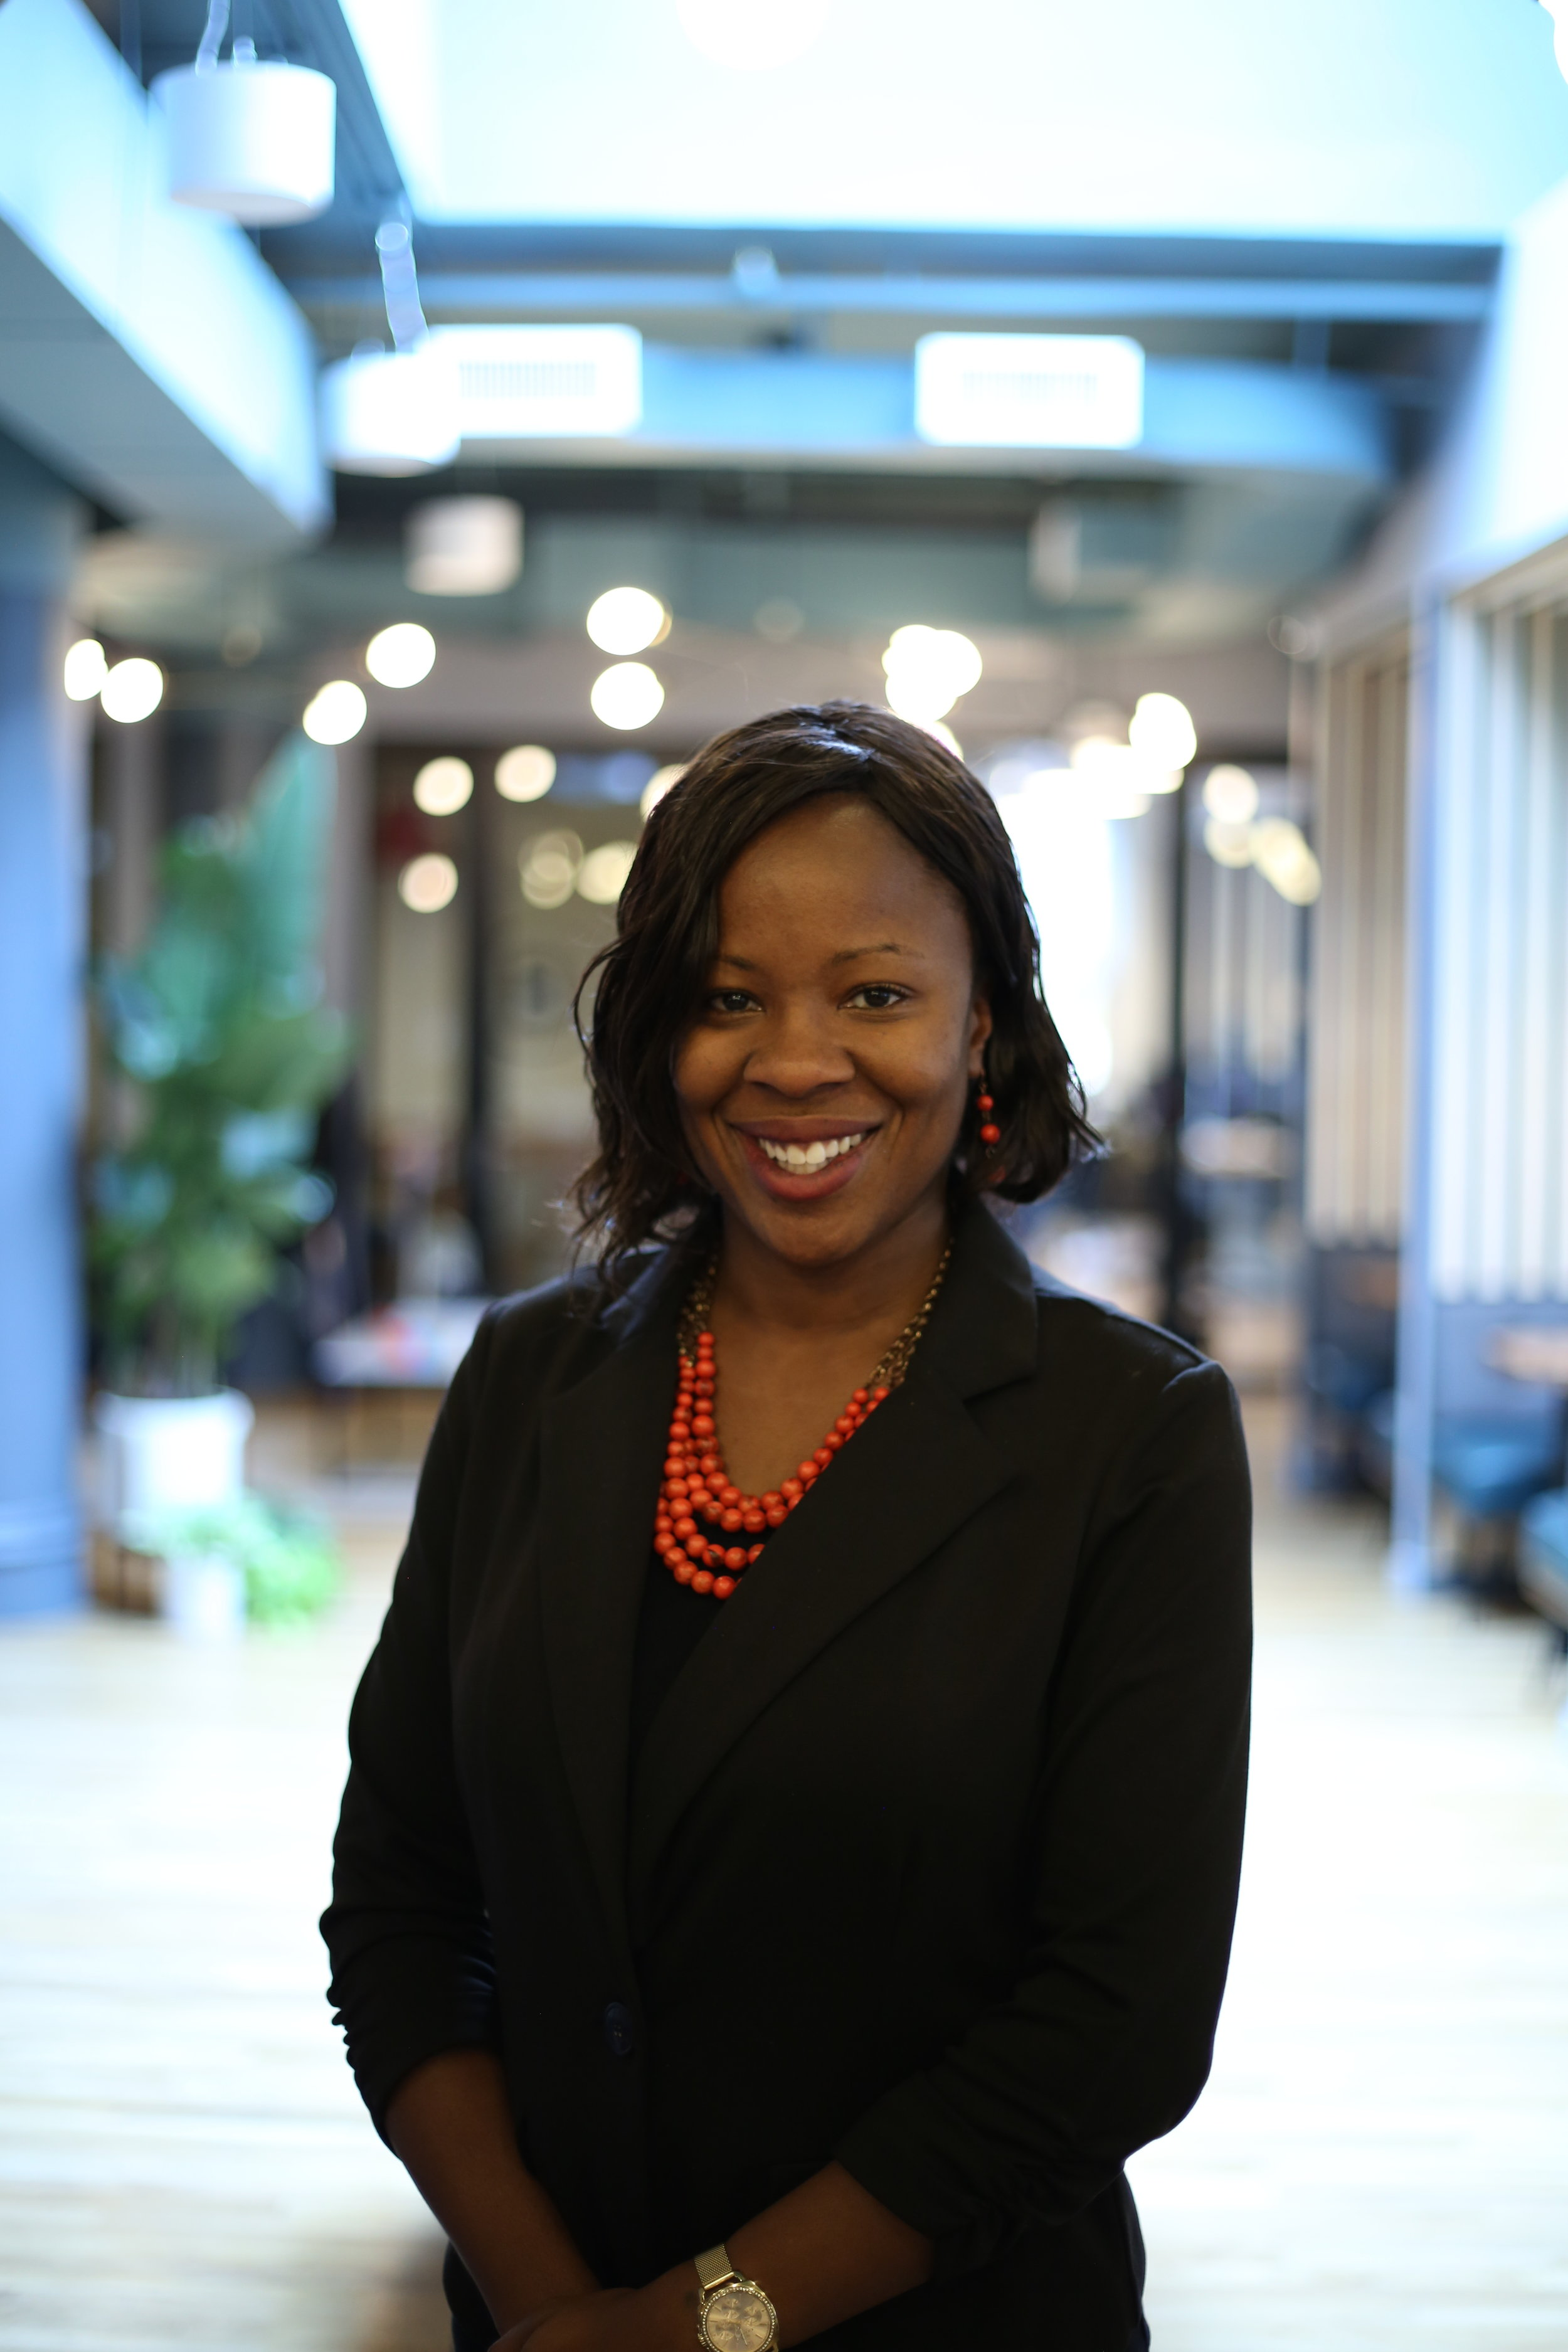 J. NWANDO (ONYEJEKWE) OLAYIWOLA, MD, MPH, FAAFP  Chief Clinical Transformation Officer, RubiconMD  Associate Physician & Clinical Instructor, University of California, San Francisco